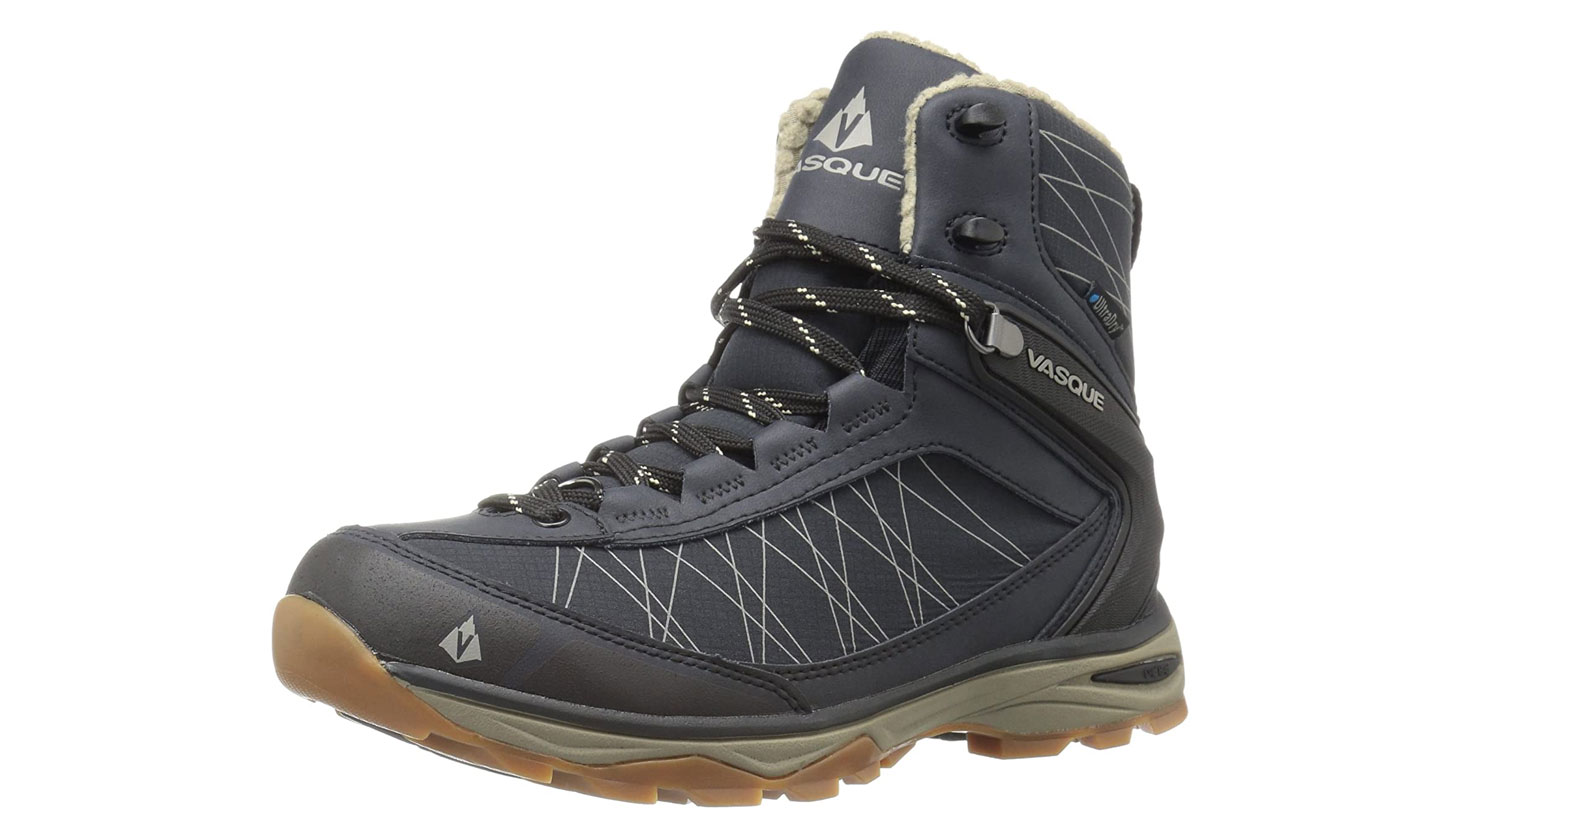 Vasque Coldspark UltraDry Snow Boot: